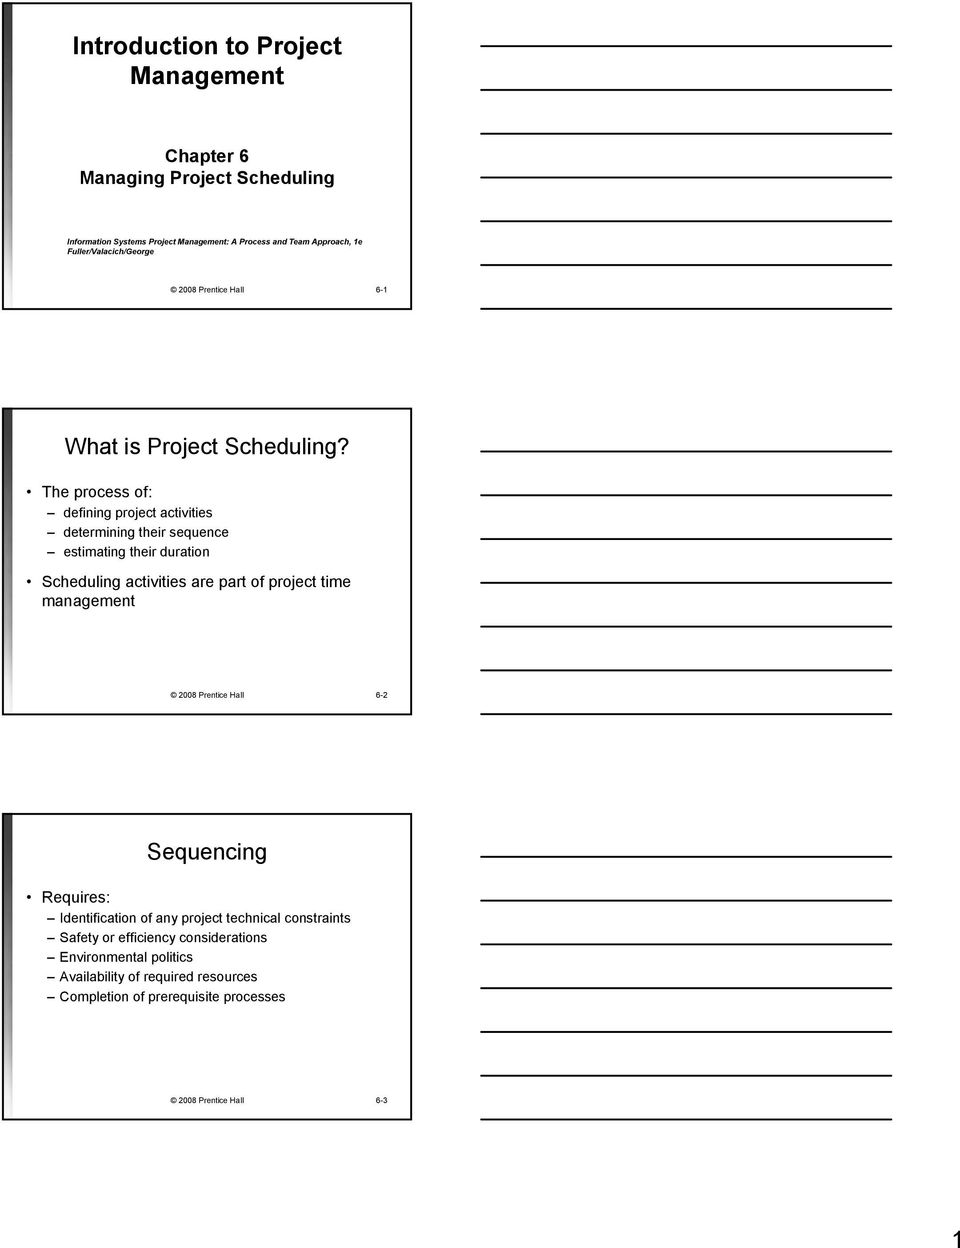 The process of: defining project activities determining their sequence estimating their duration Scheduling activities are part of project time management